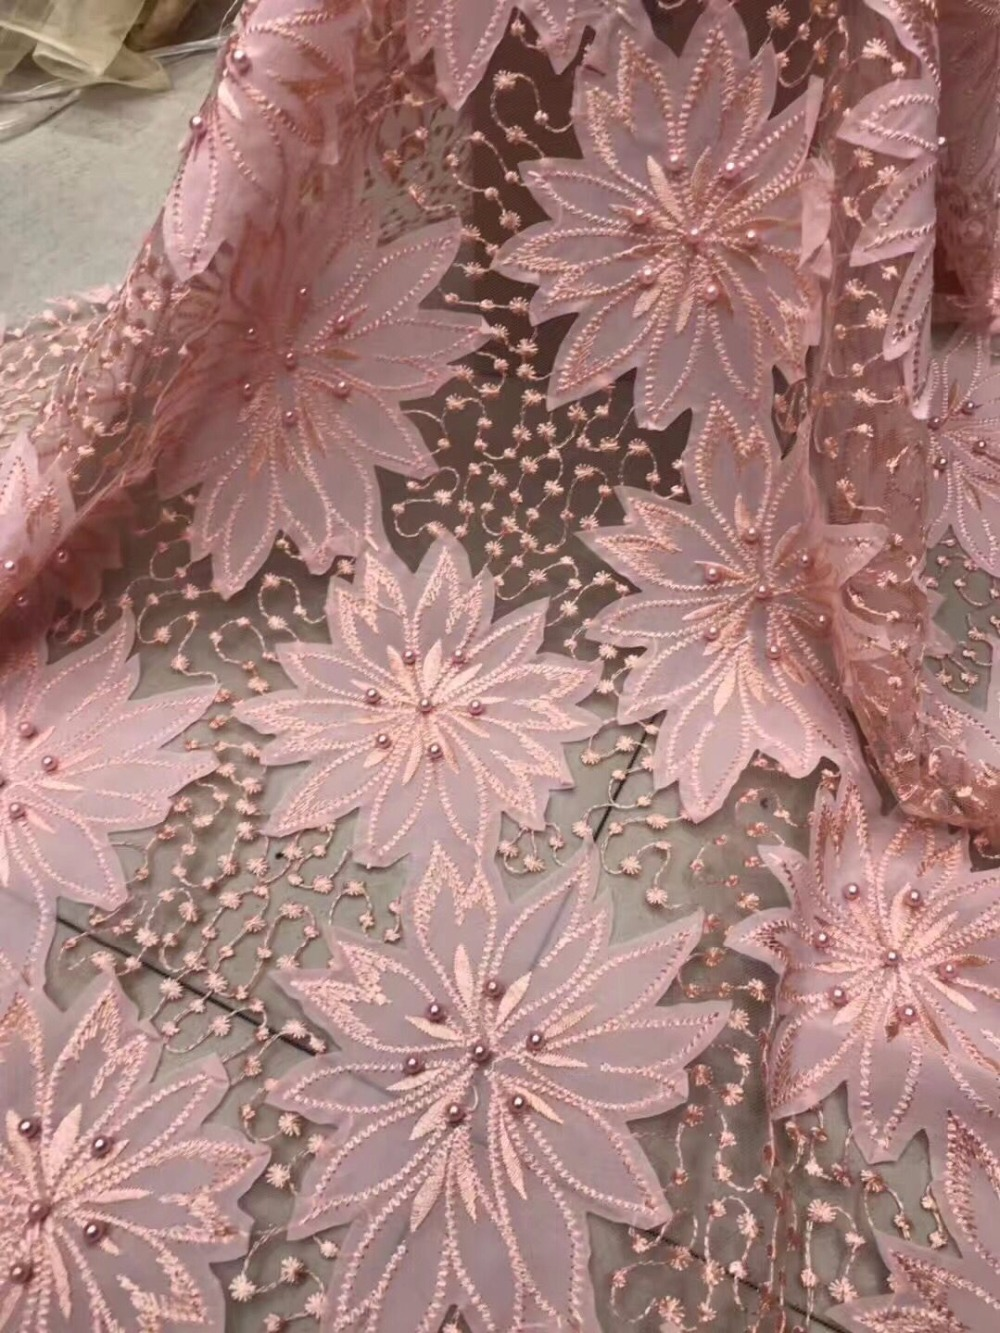 French Lace Wedding Dress Fabric 2017 French Lace With Beads Embroidered Latest African Lace With Stones For WomenFrench Lace Wedding Dress Fabric 2017 French Lace With Beads Embroidered Latest African Lace With Stones For Women